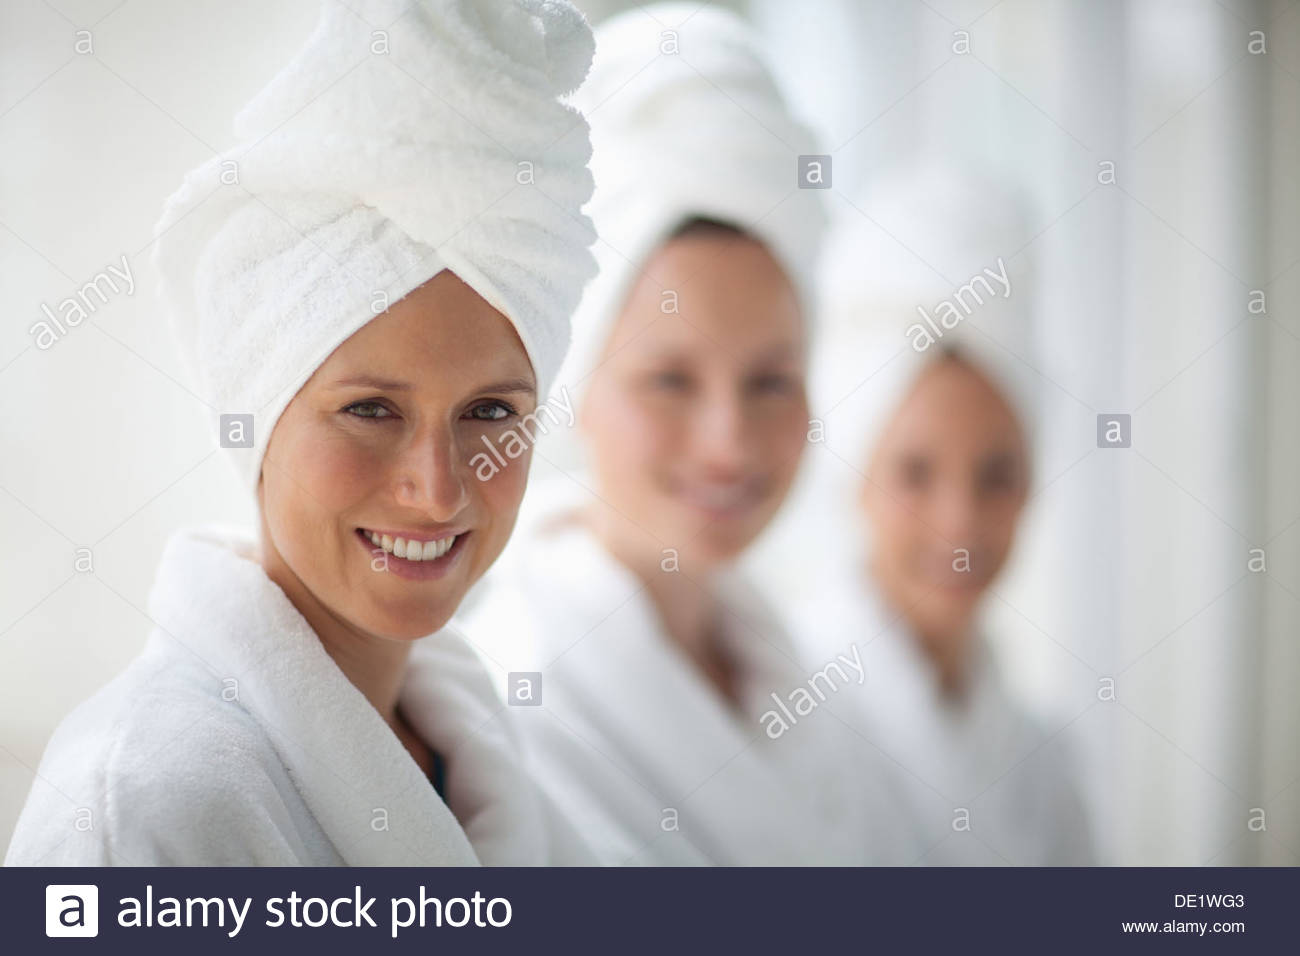 Portrait of smiling women in bathrobes and hair wrapped in towels at spa - Stock Image